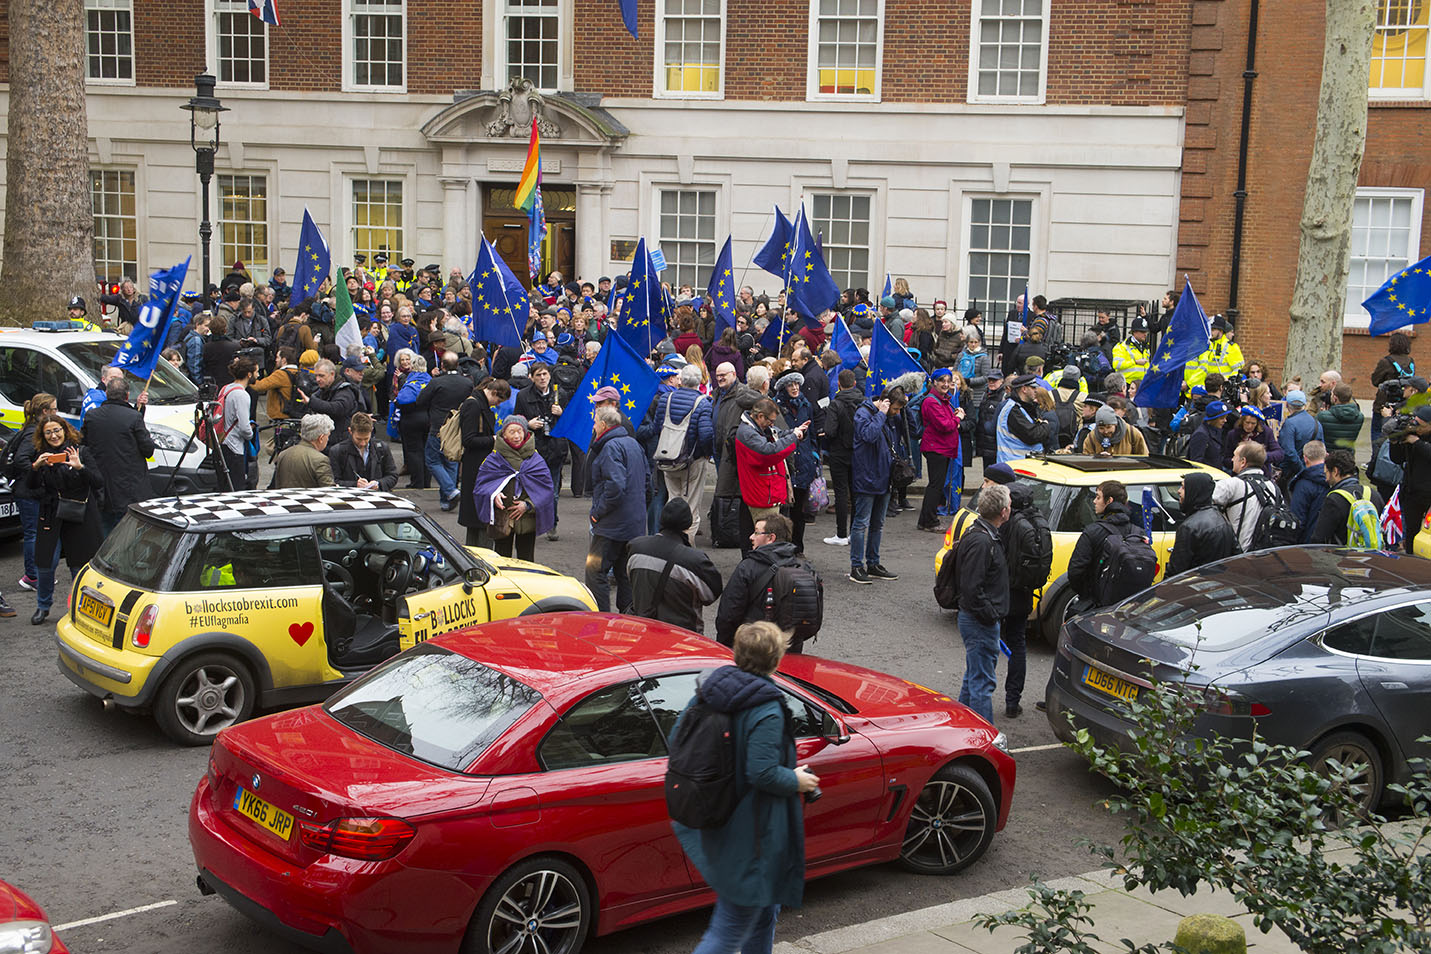 """31 Jan 2020 - London, UK - Outside Europe House on the final day of EU membership 2020, """"à bientôt"""" (see you soon) procession from Downing Street to Europe House. EU Flag Mafia minis present."""